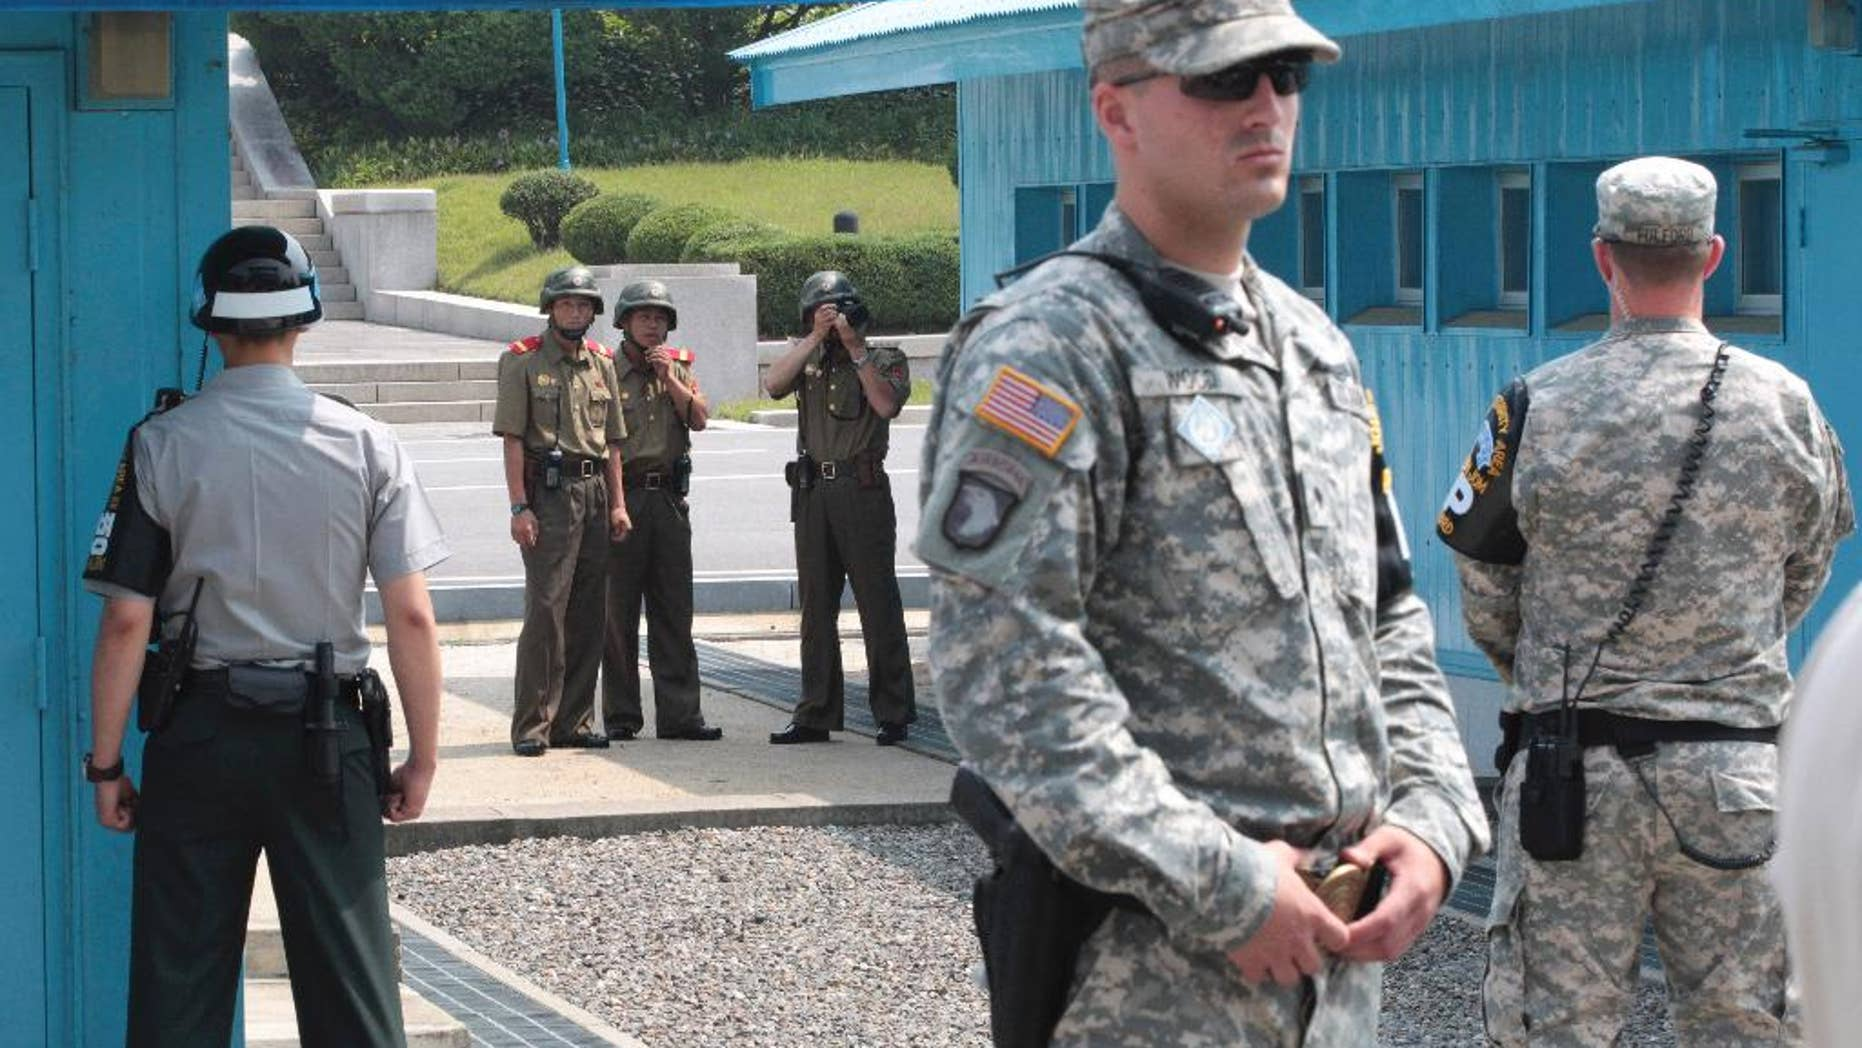 FILE - In this July 27, 2014 file photo, North Korean army soldiers watch the south side while a South Korean and United States Army soldiers stand guard at the border villages of Panmunjom in Paju, South Korea. North Korea has threatened on Saturday, Aug. 27, 2016, to aim fire at the lighting equipment used by American and South Korean troops at a truce village inside the Demilitarized Zone that divides the two Korea. (AP Photo/Ahn Young-joon, File)